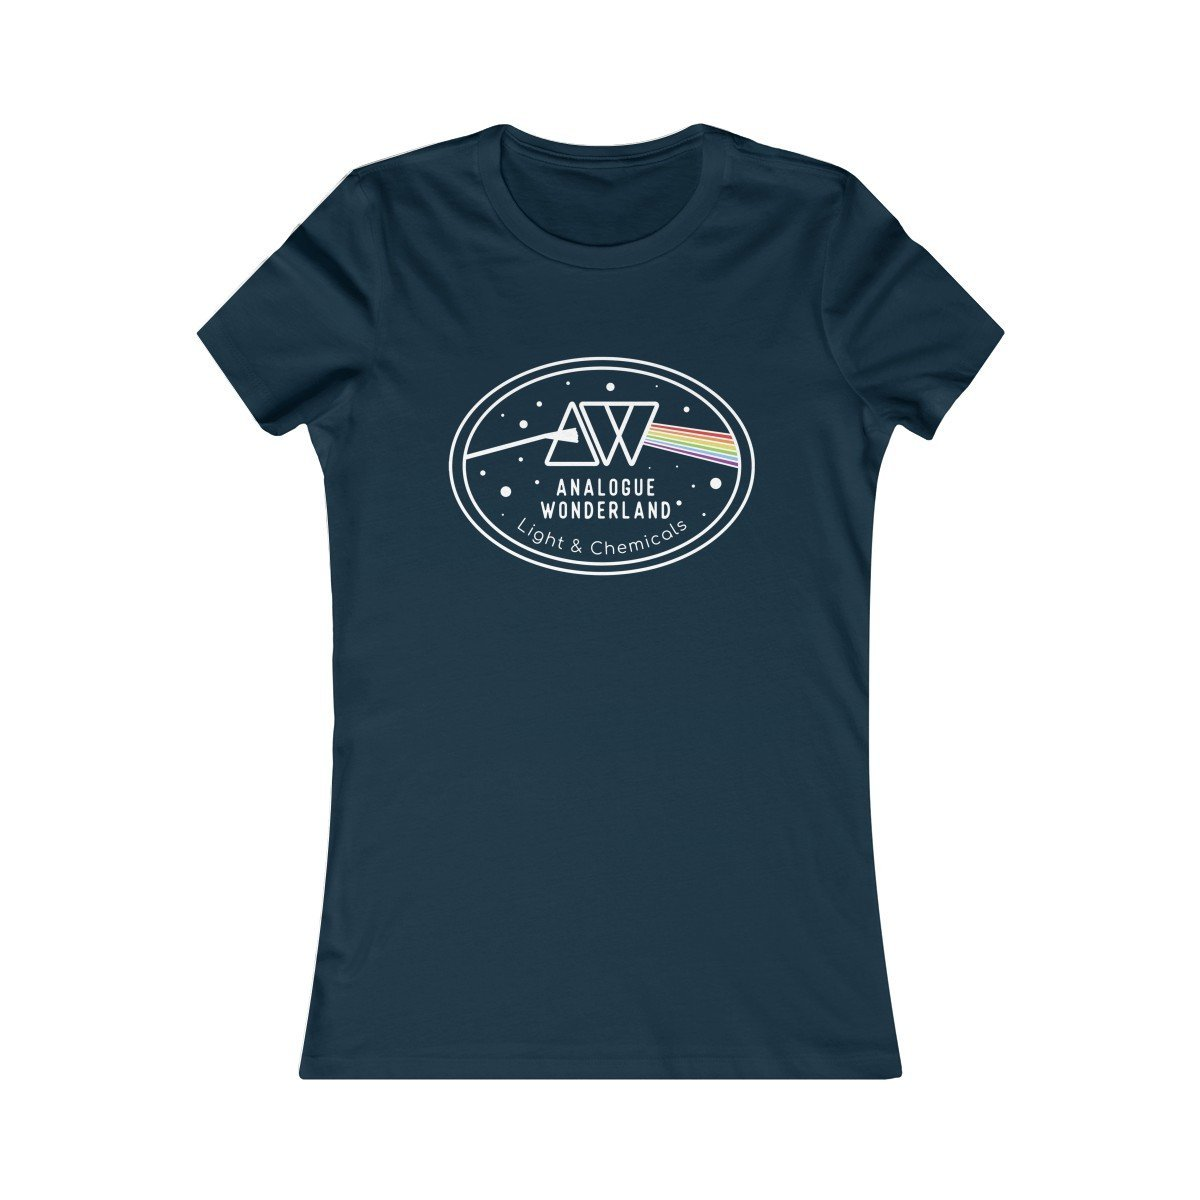 Women's T-Shirt for Film Photographers - Prism of Light - Analogue Wonderland